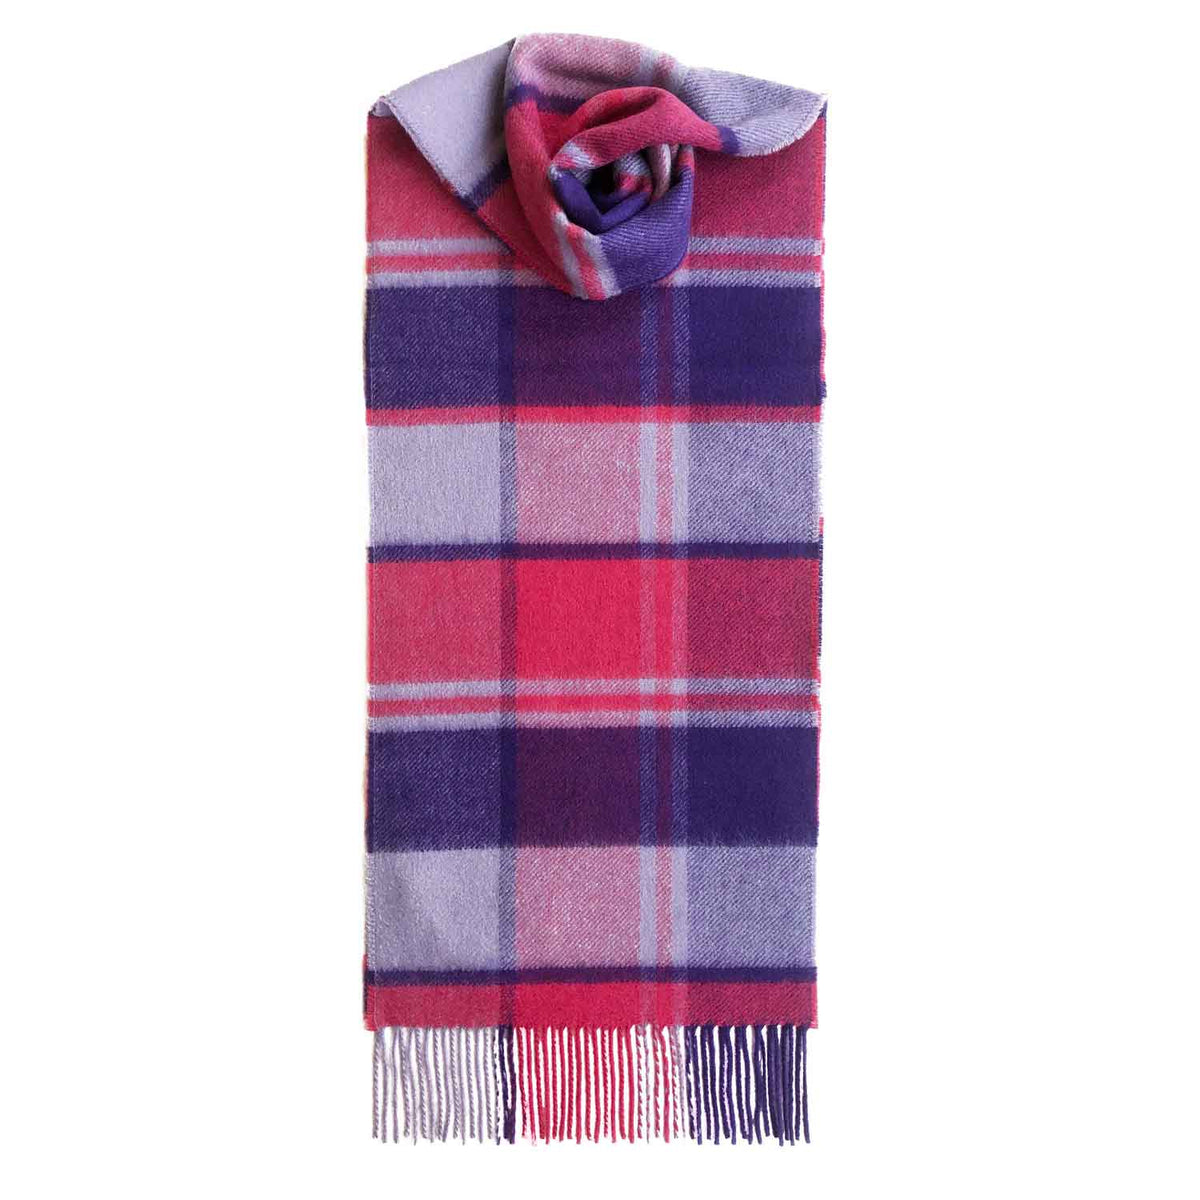 Lomond Cashmere | Purple Pink | Check Cashmere Scarf With Fringes | Made in Scotland | Shop at The Cashmere Choice | London